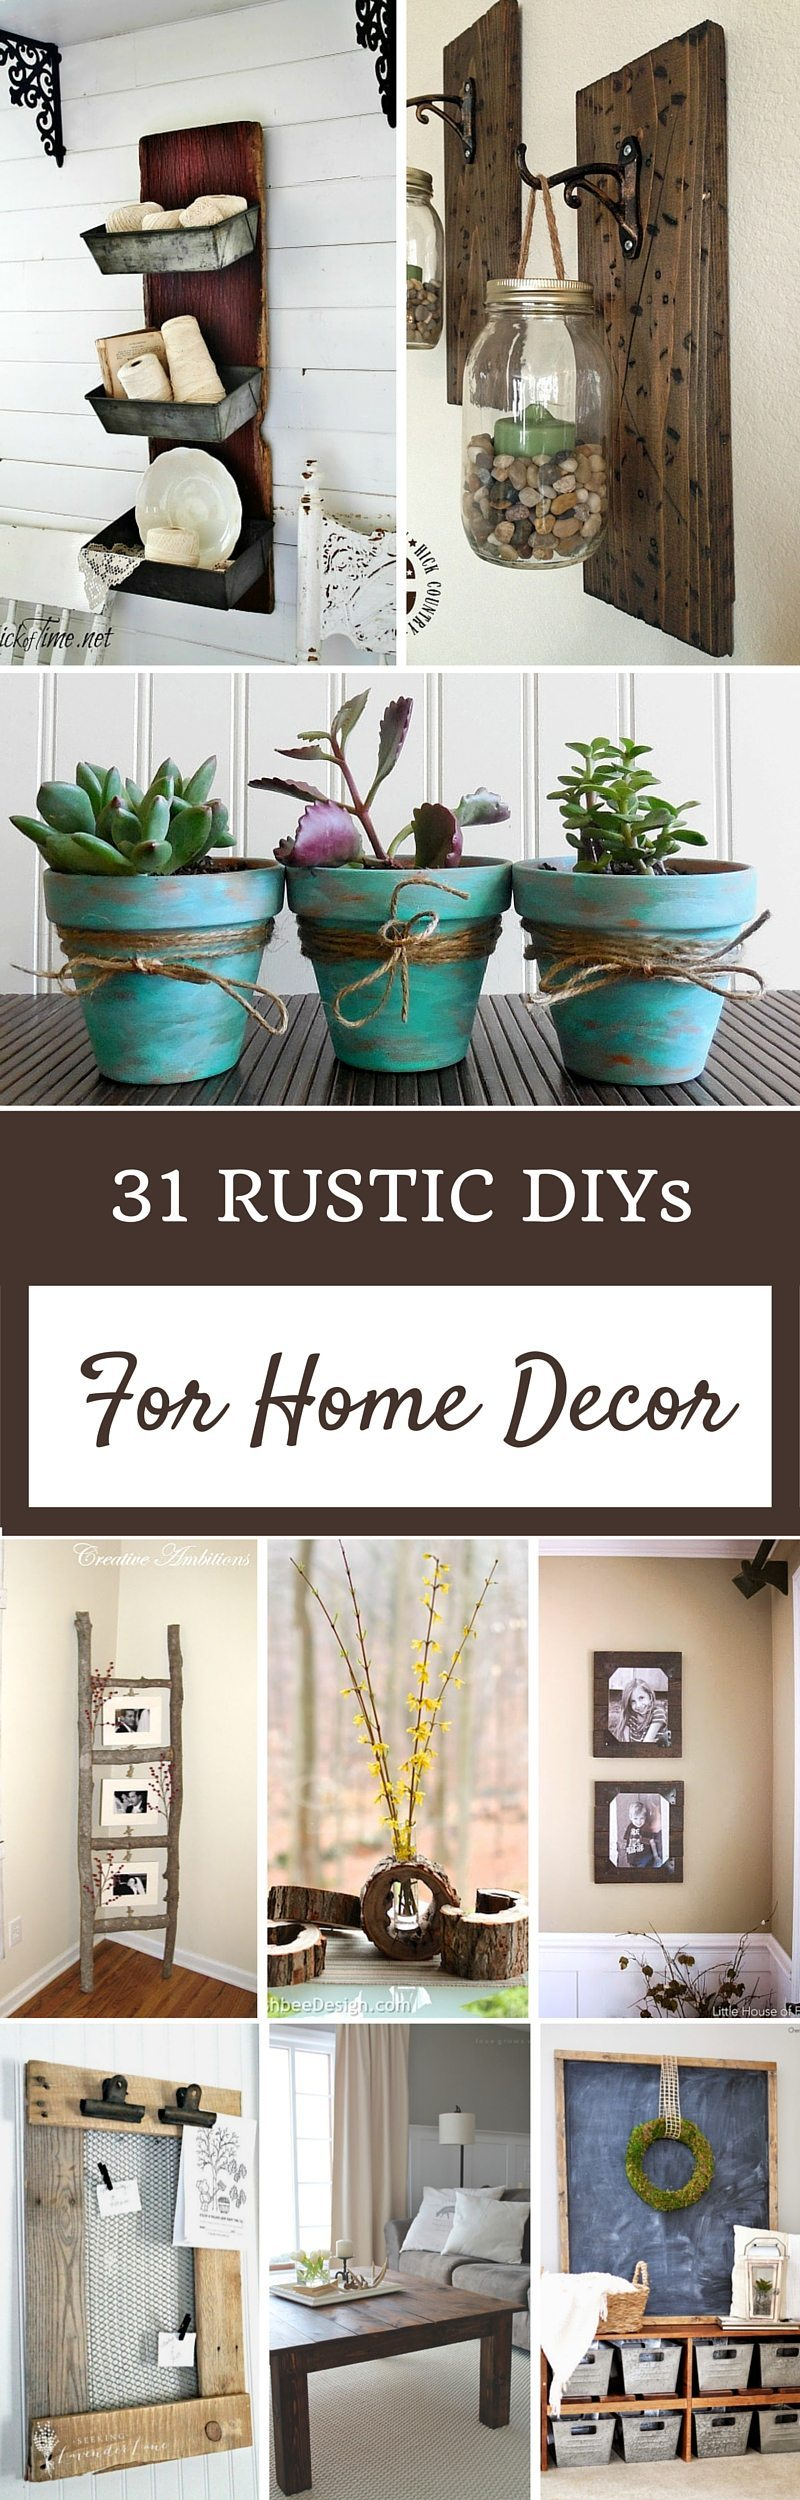 Rustic home decor ideas refresh restyle Diy home decor crafts pinterest